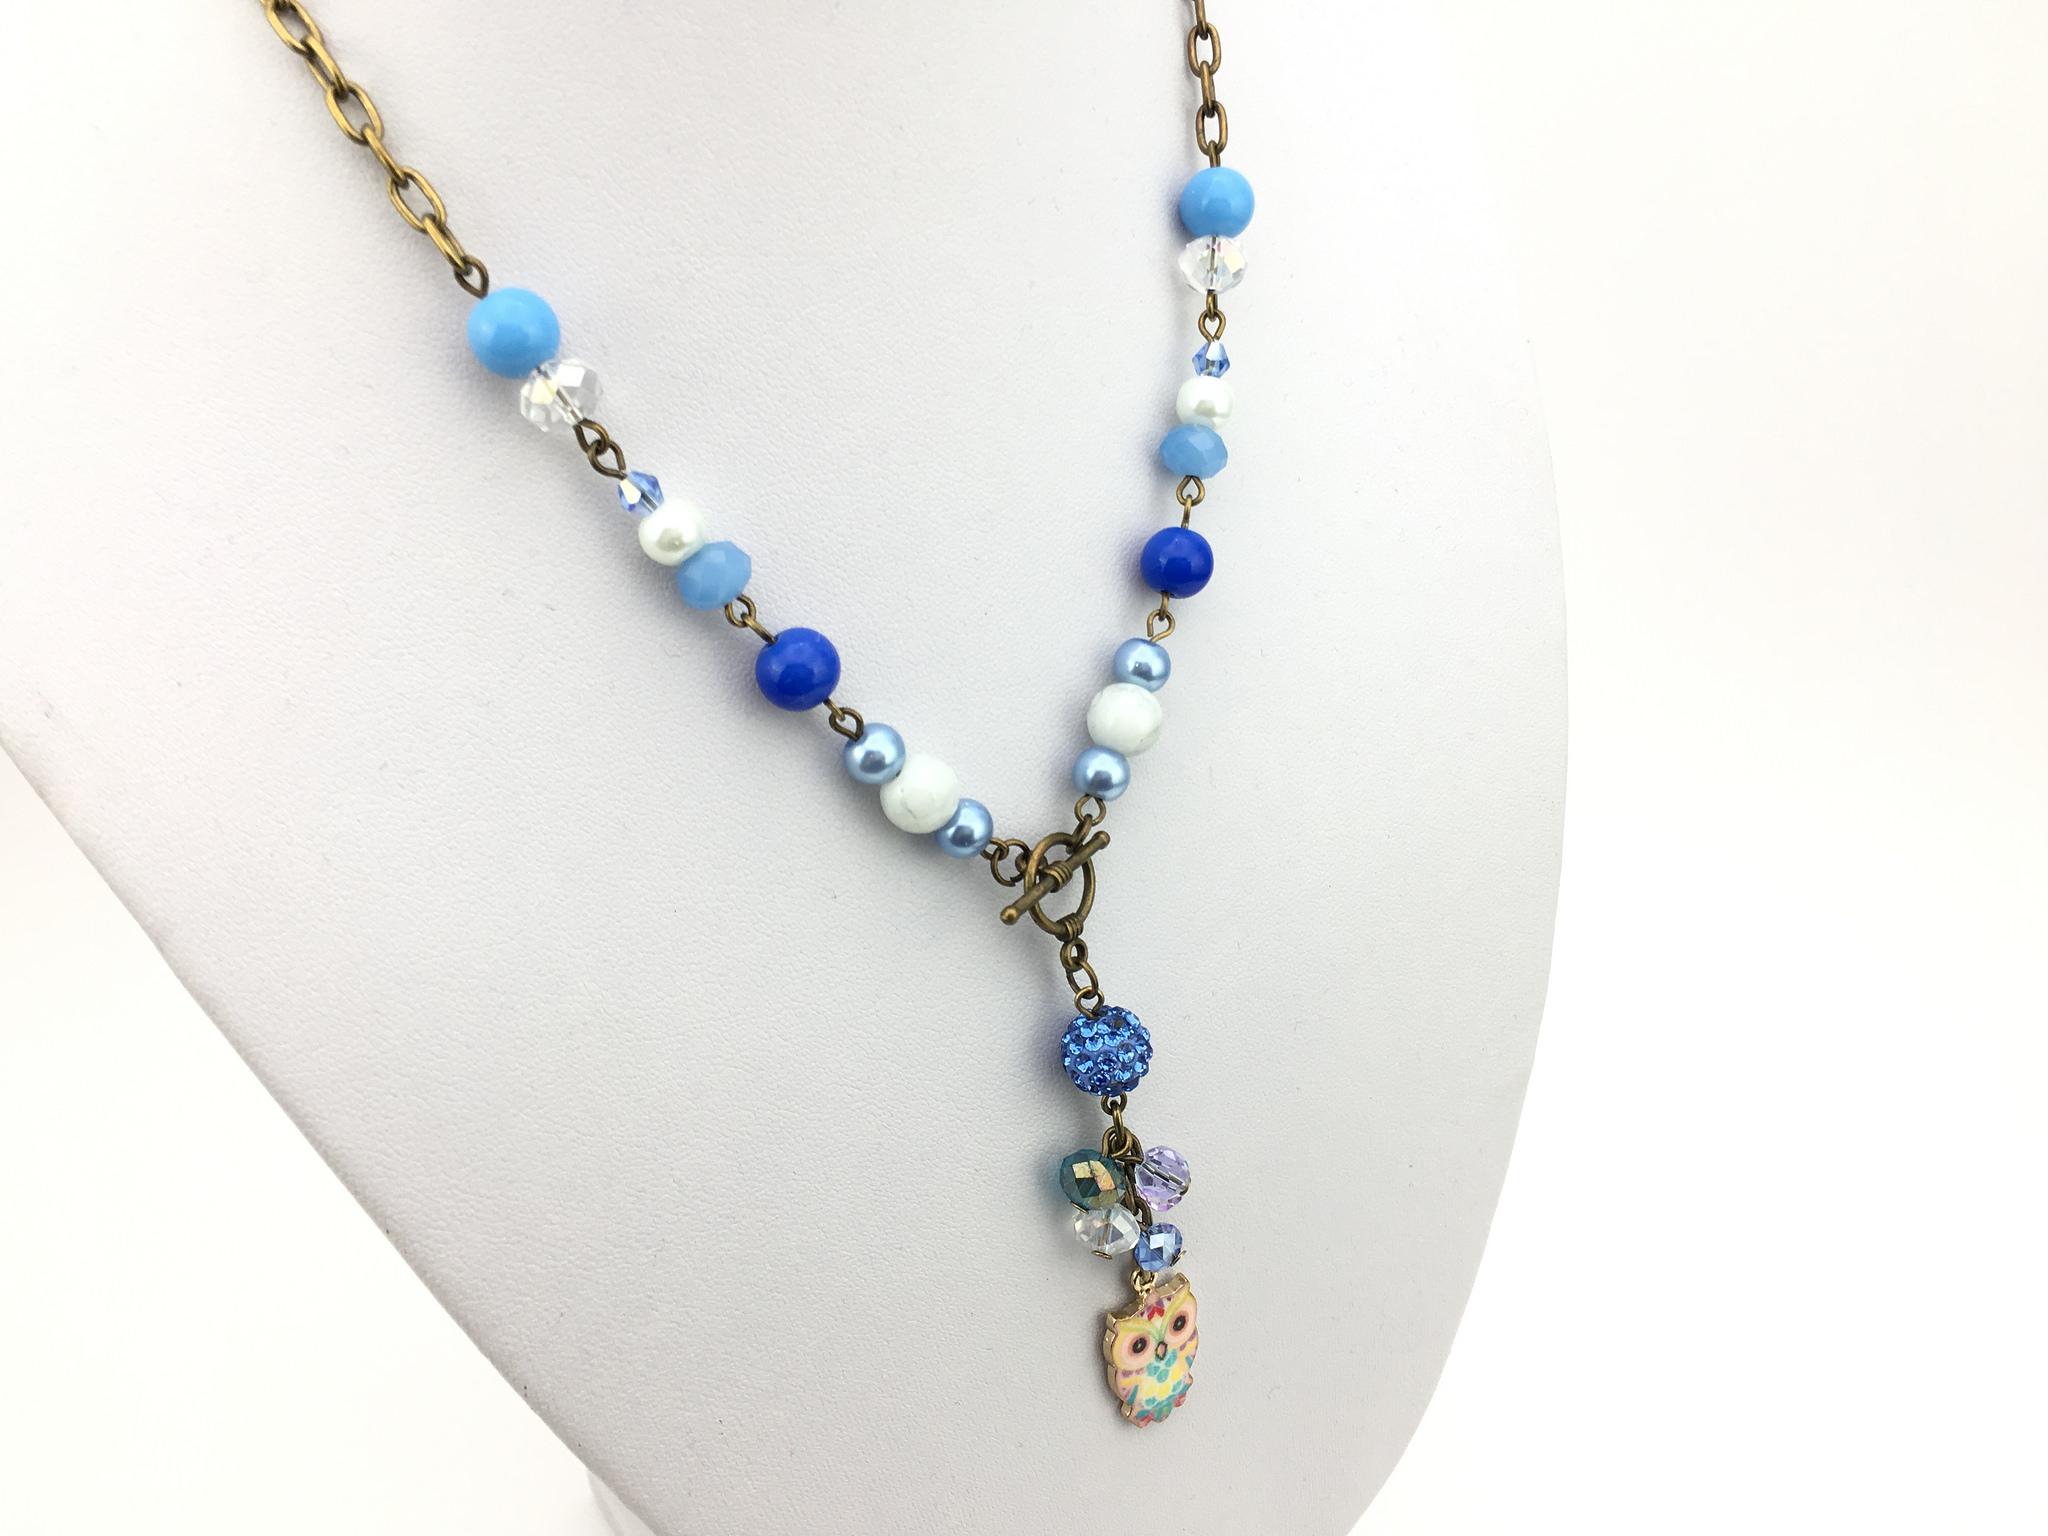 Owl Charm Handmade Necklace in Blue for Kids